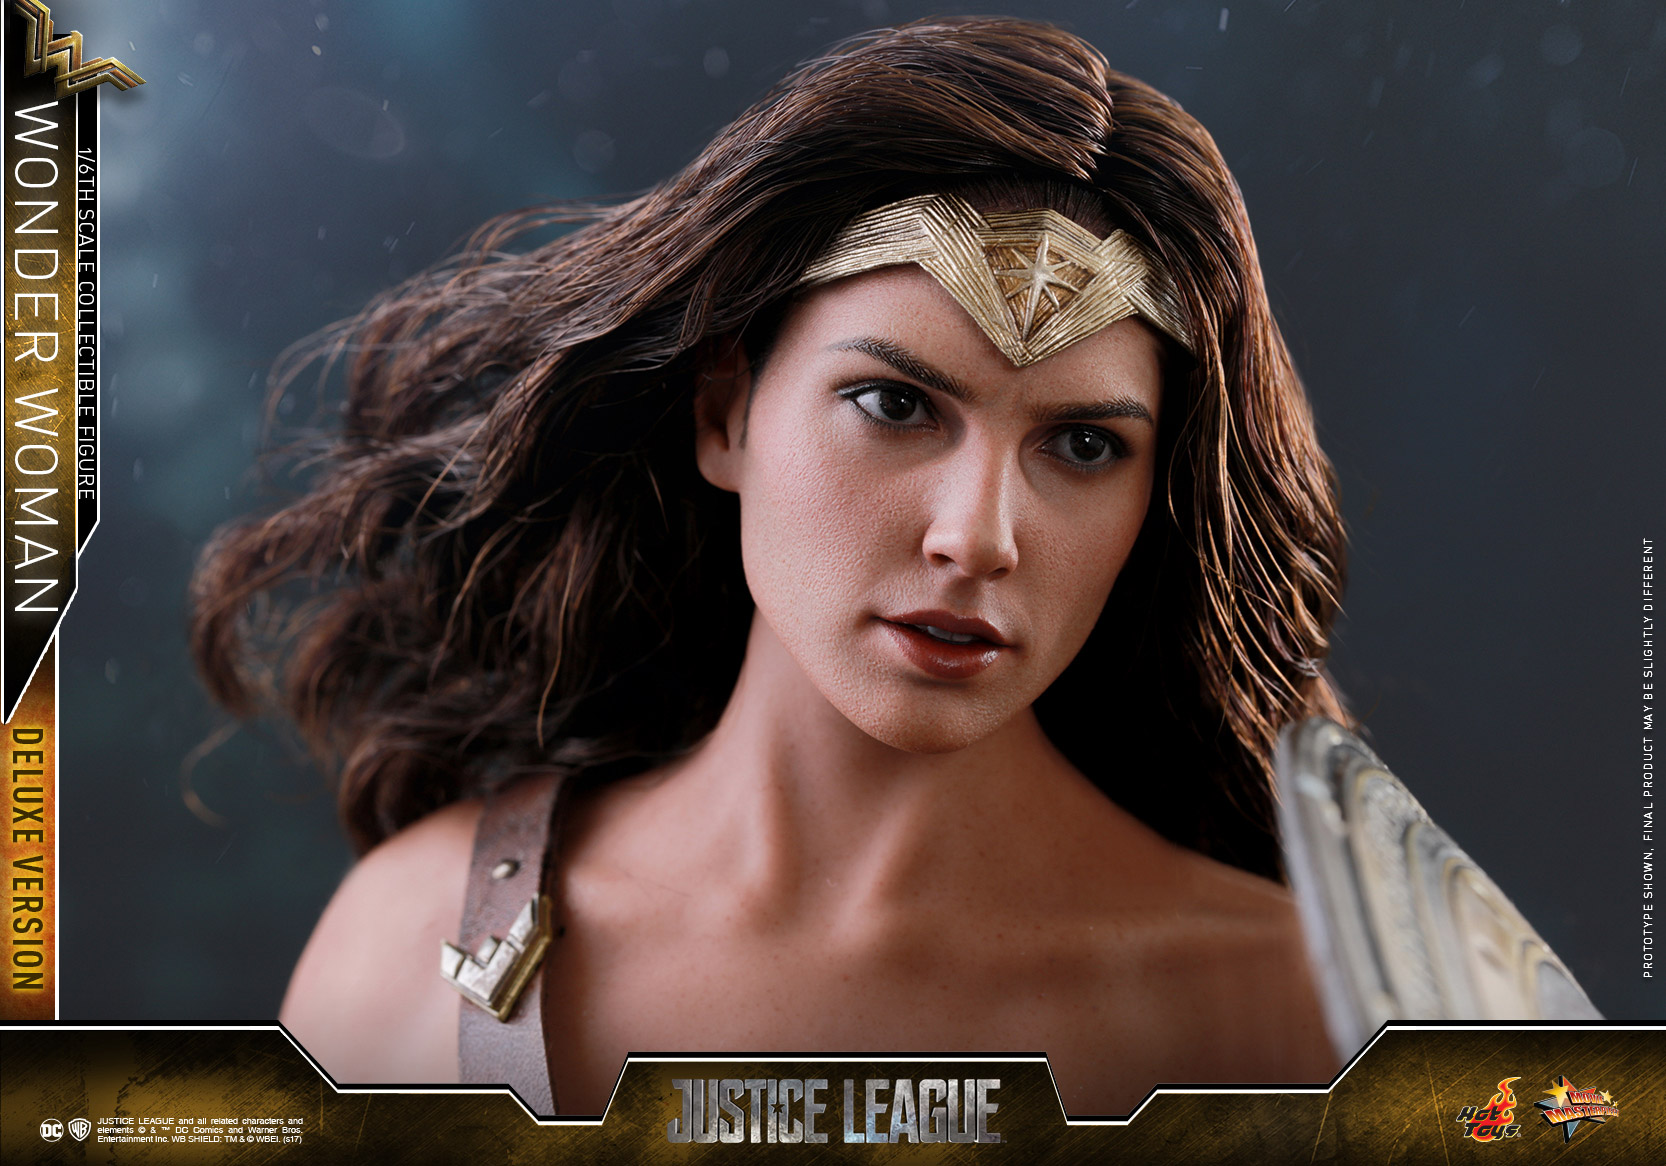 Hot-Toys-Justice-League-Wonder-Woman-collectible-figure-Deluxe_PR-23.jpg